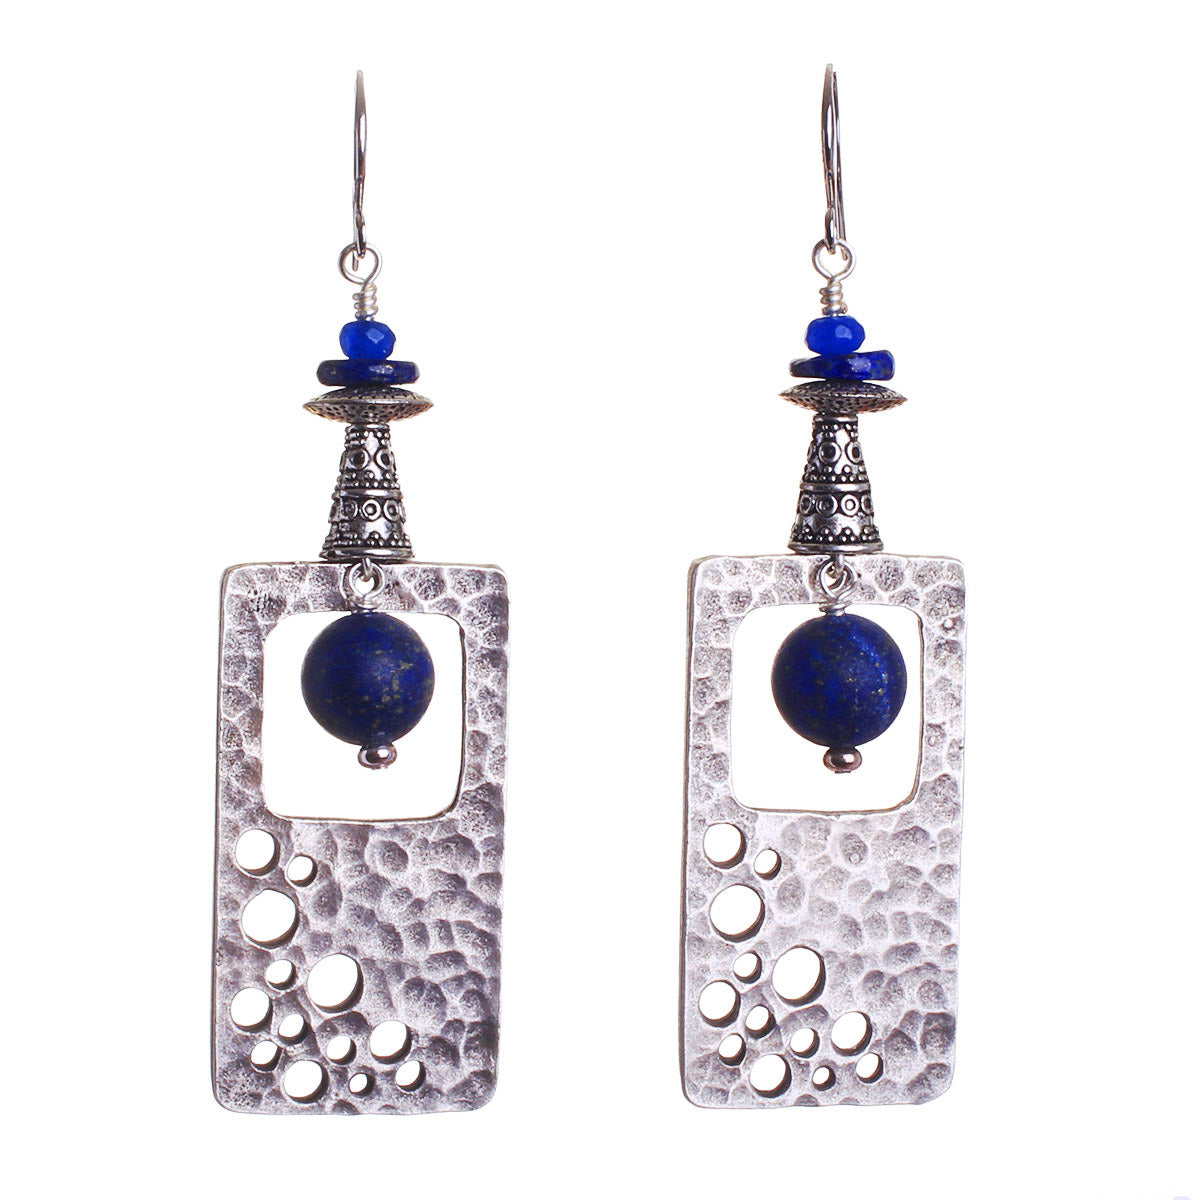 N°543 The Lapis Lazuli Simplicity Contract Statement Earrings